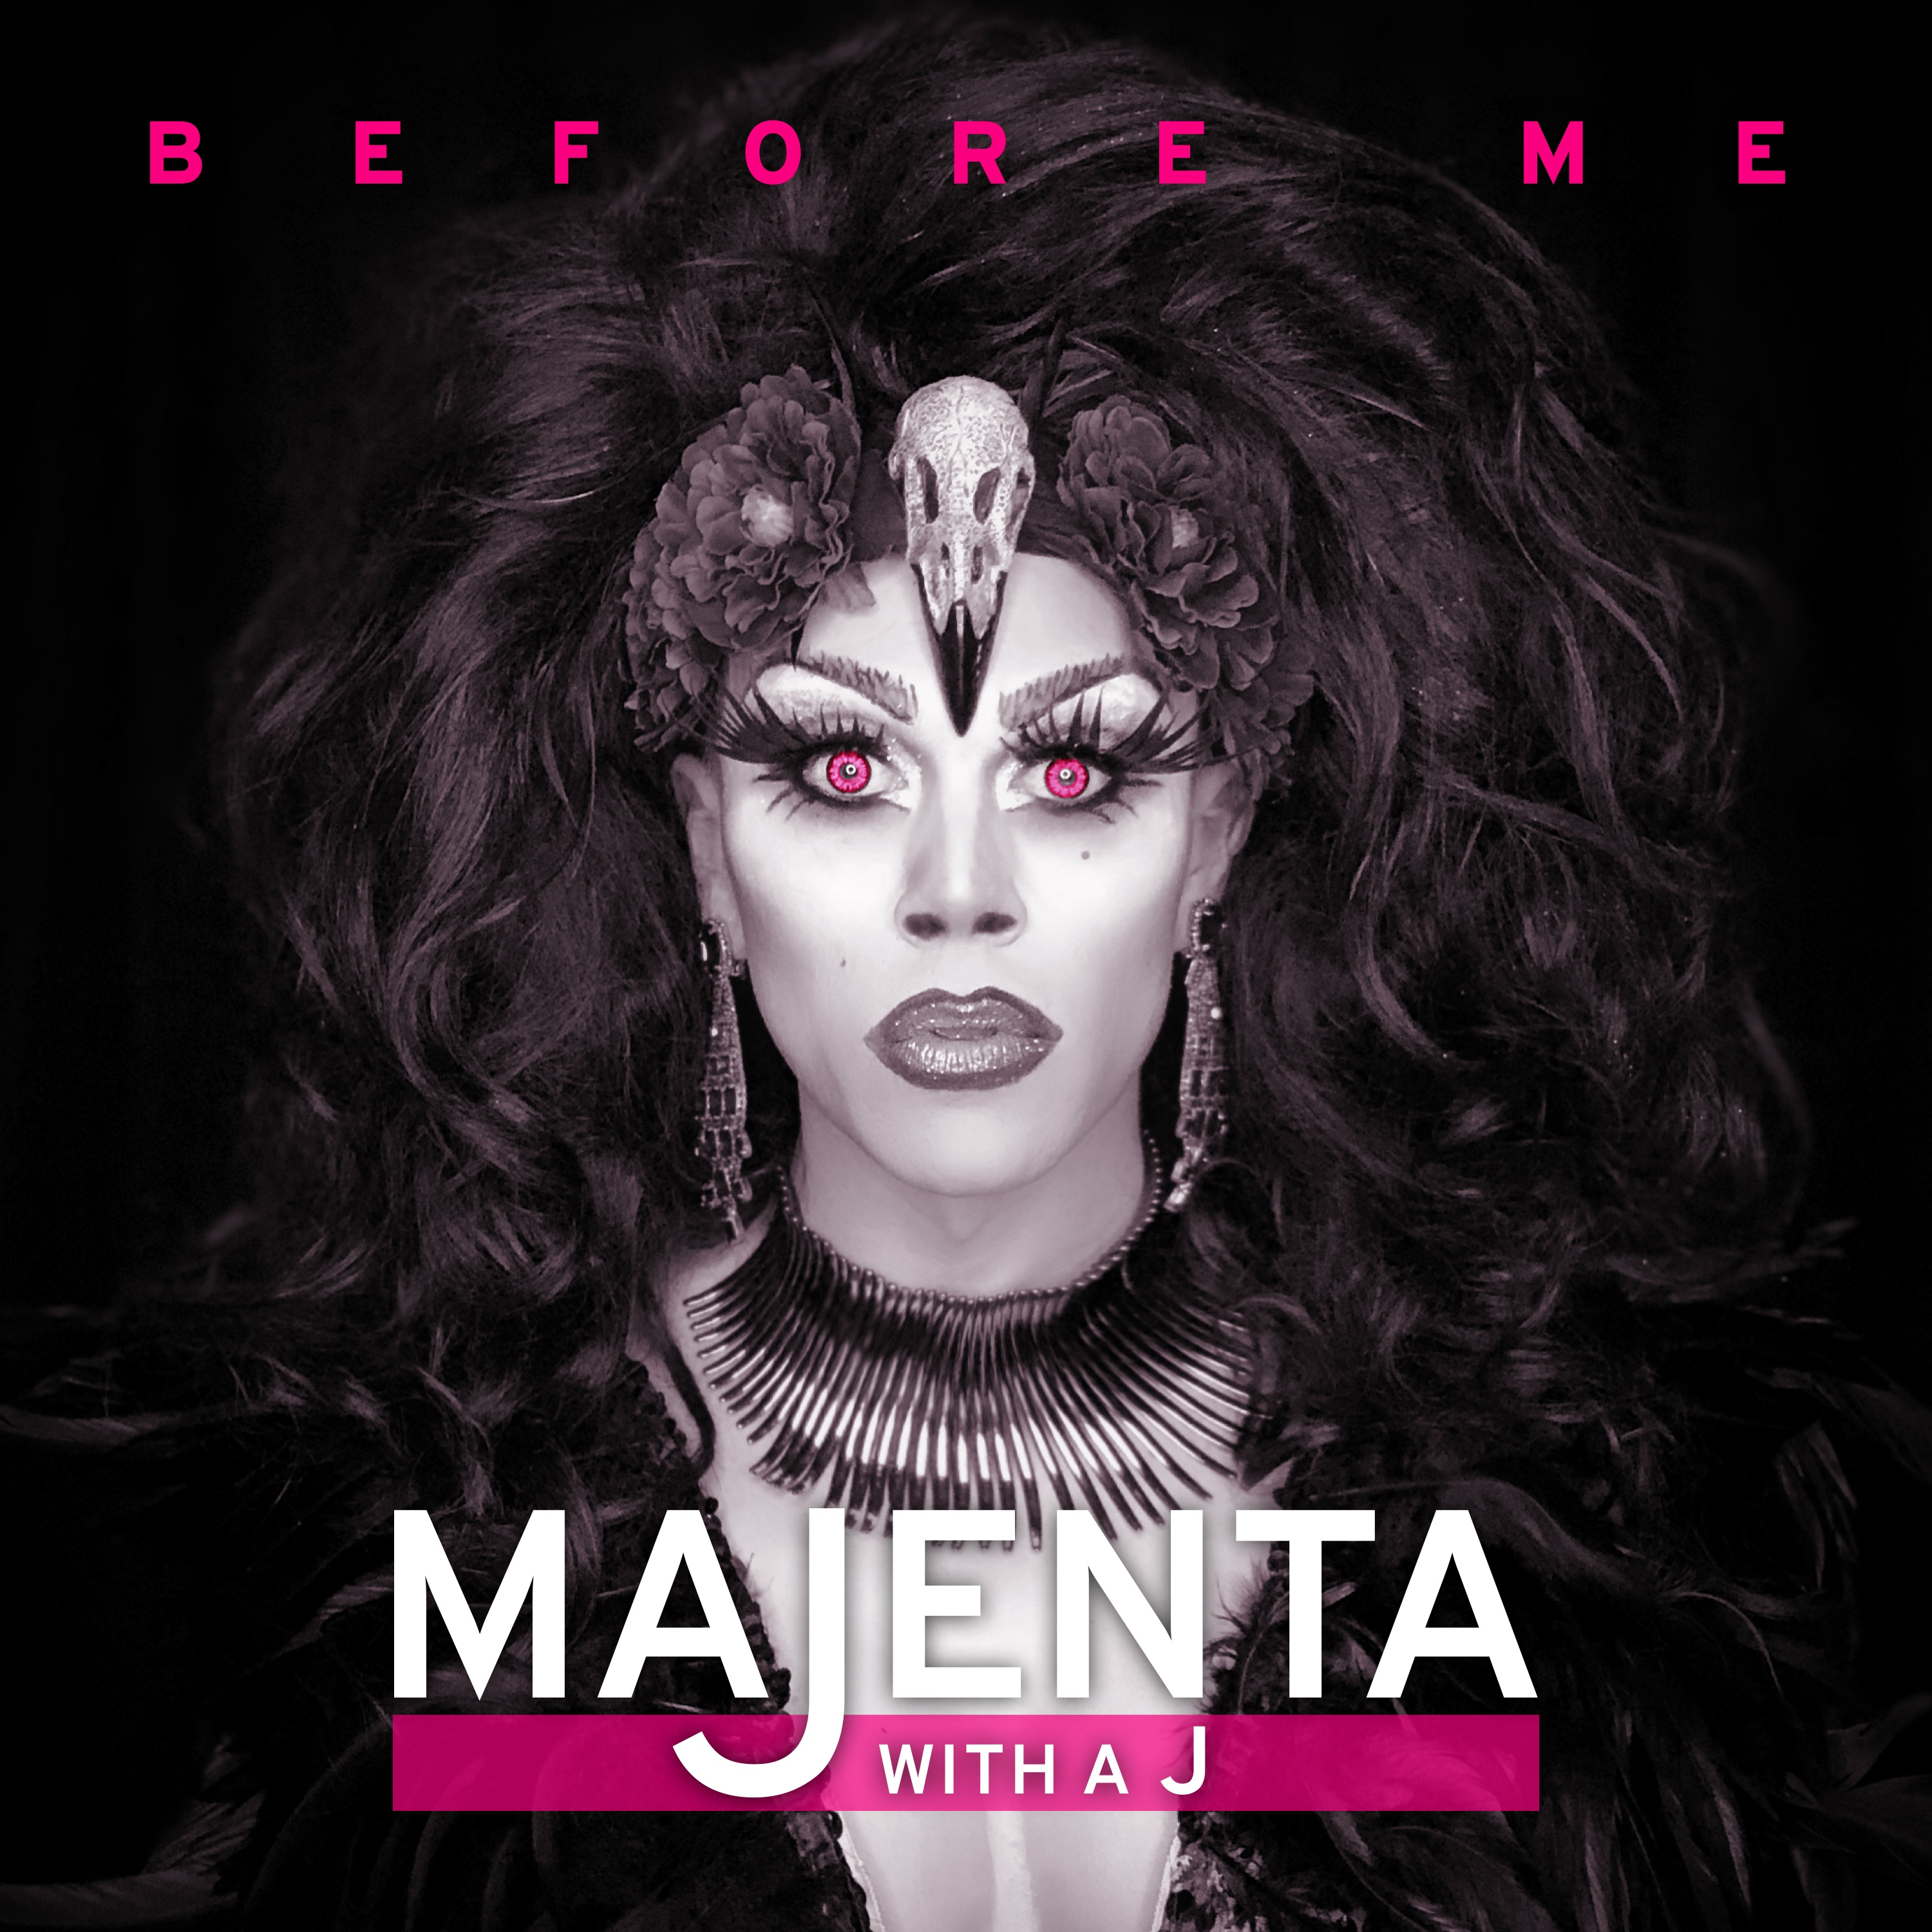 Majenta with a J: Before Me (Album Cover)